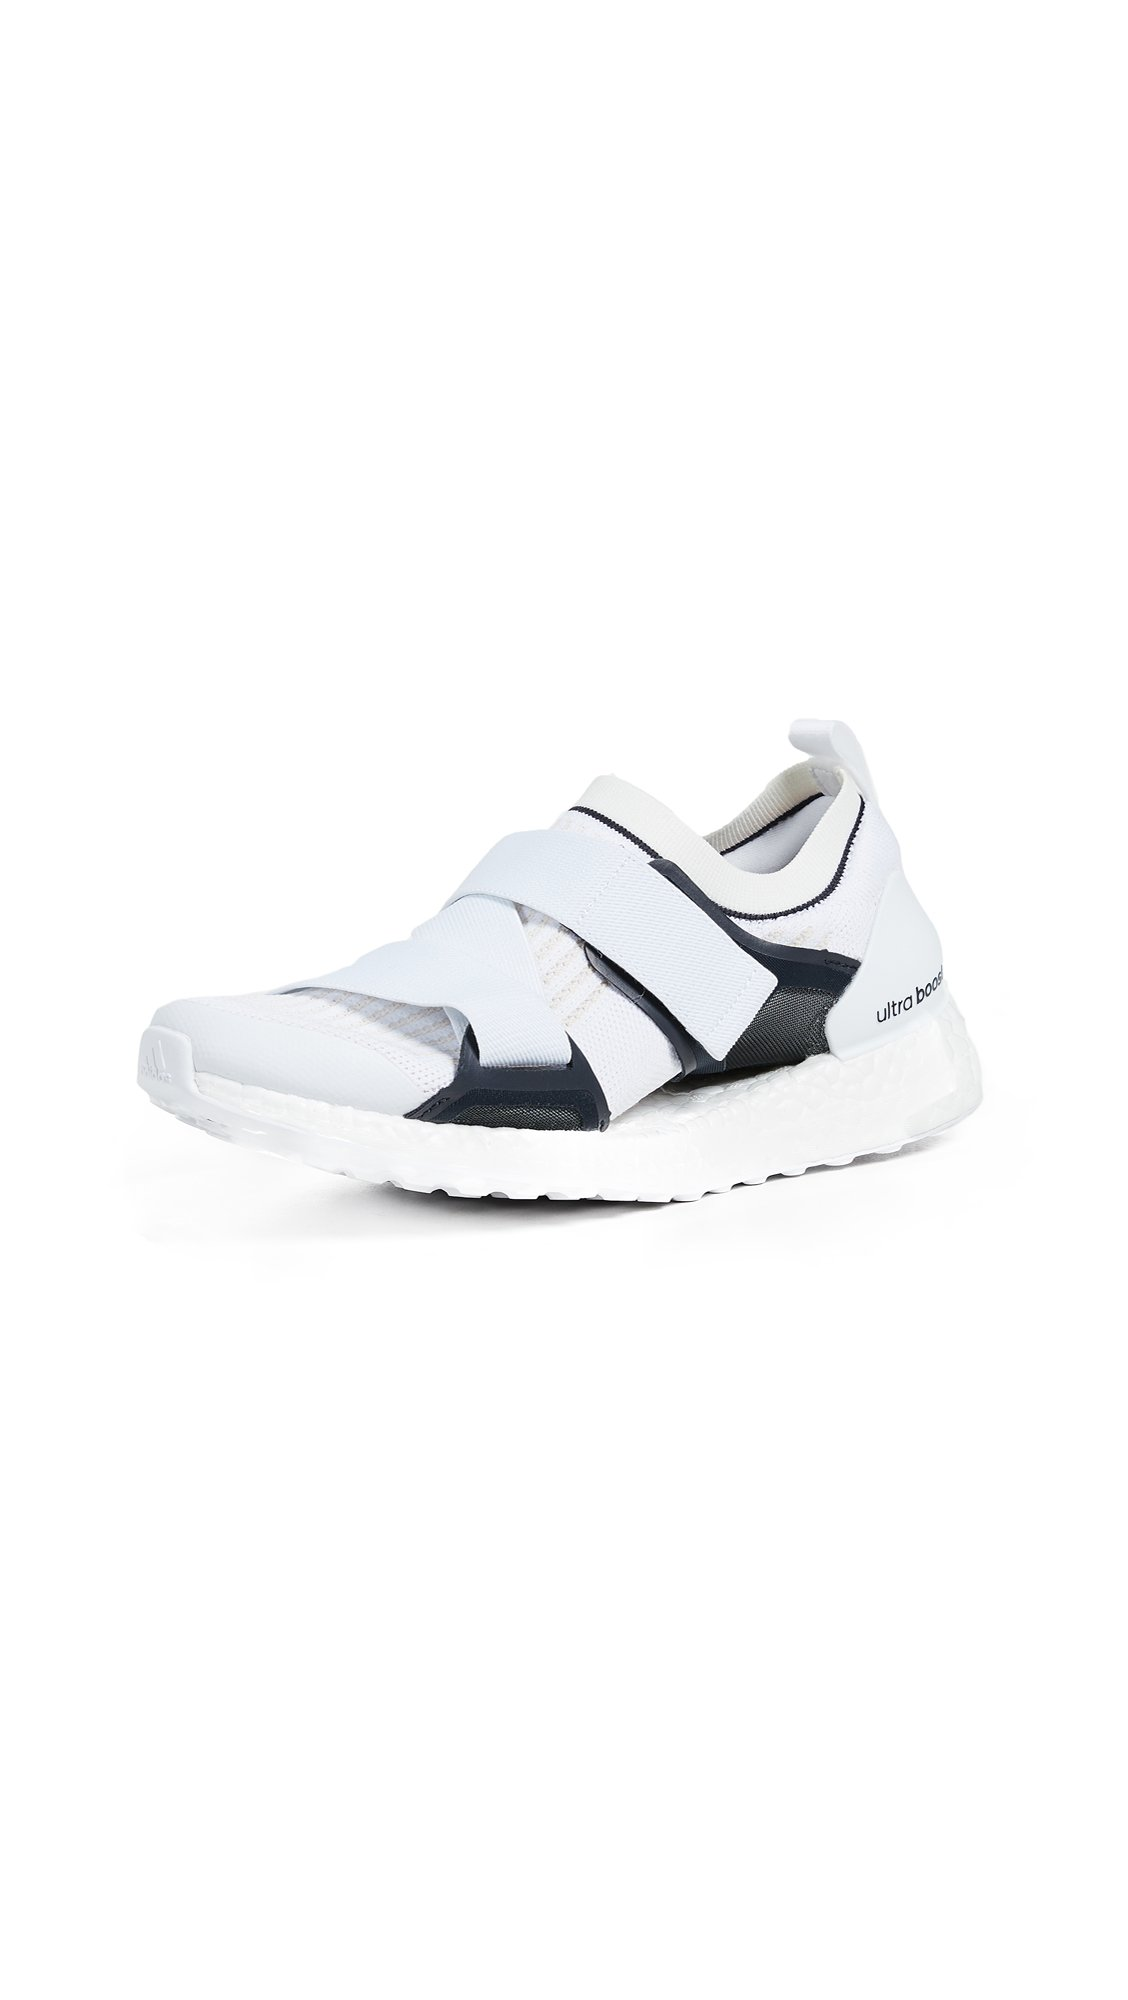 Galleon Adidas By Stella McCartney Women's Ultraboost X